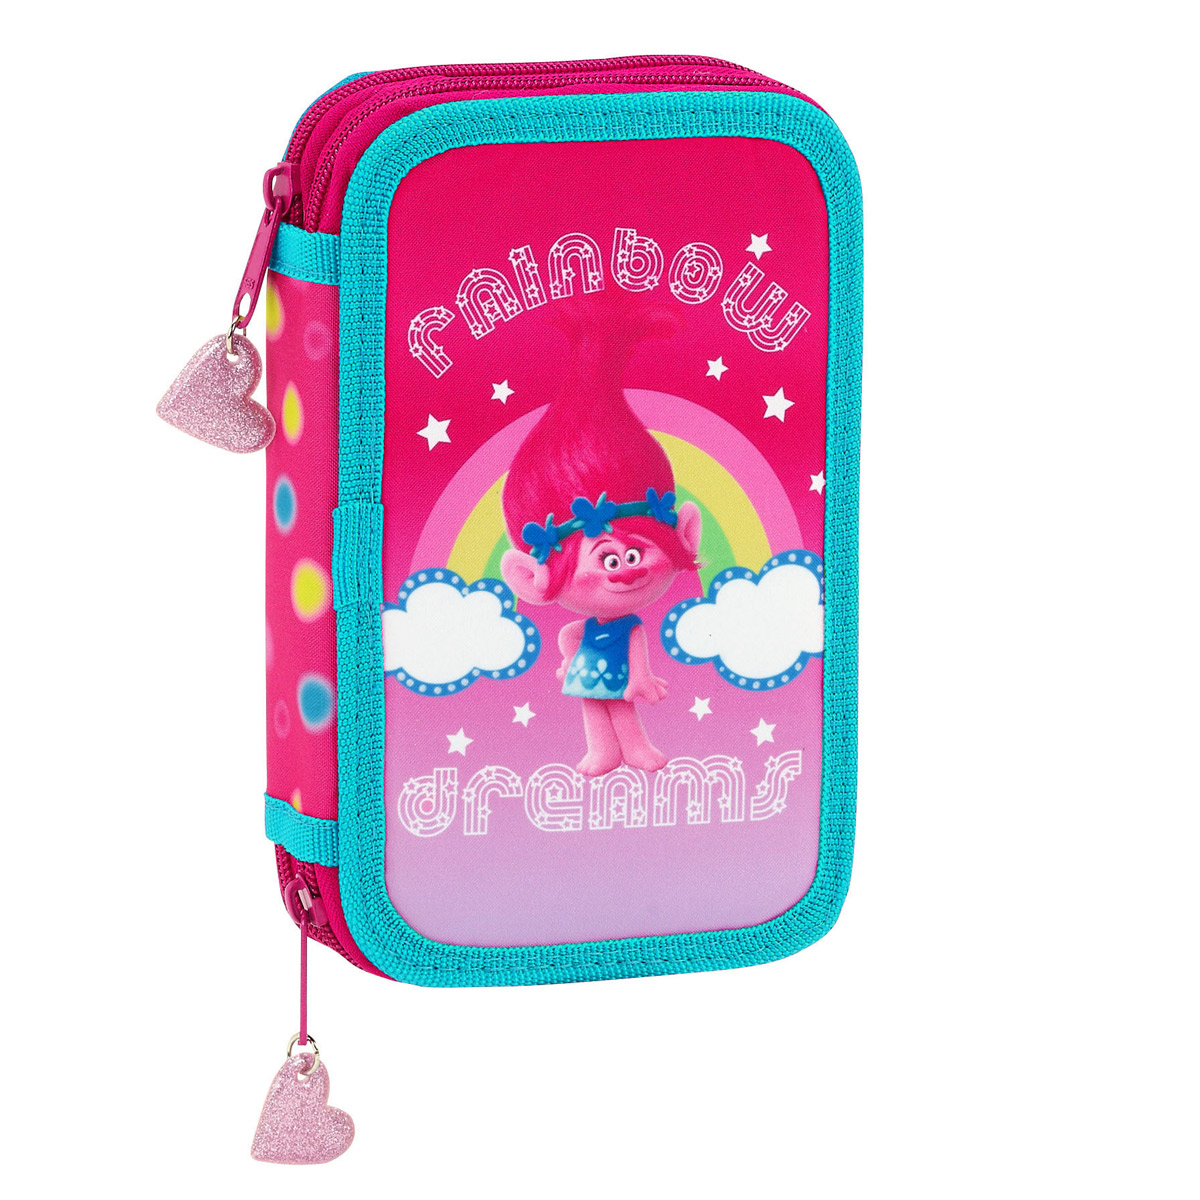 Trolls 2 Tier Pencil Case with Contents – image 1